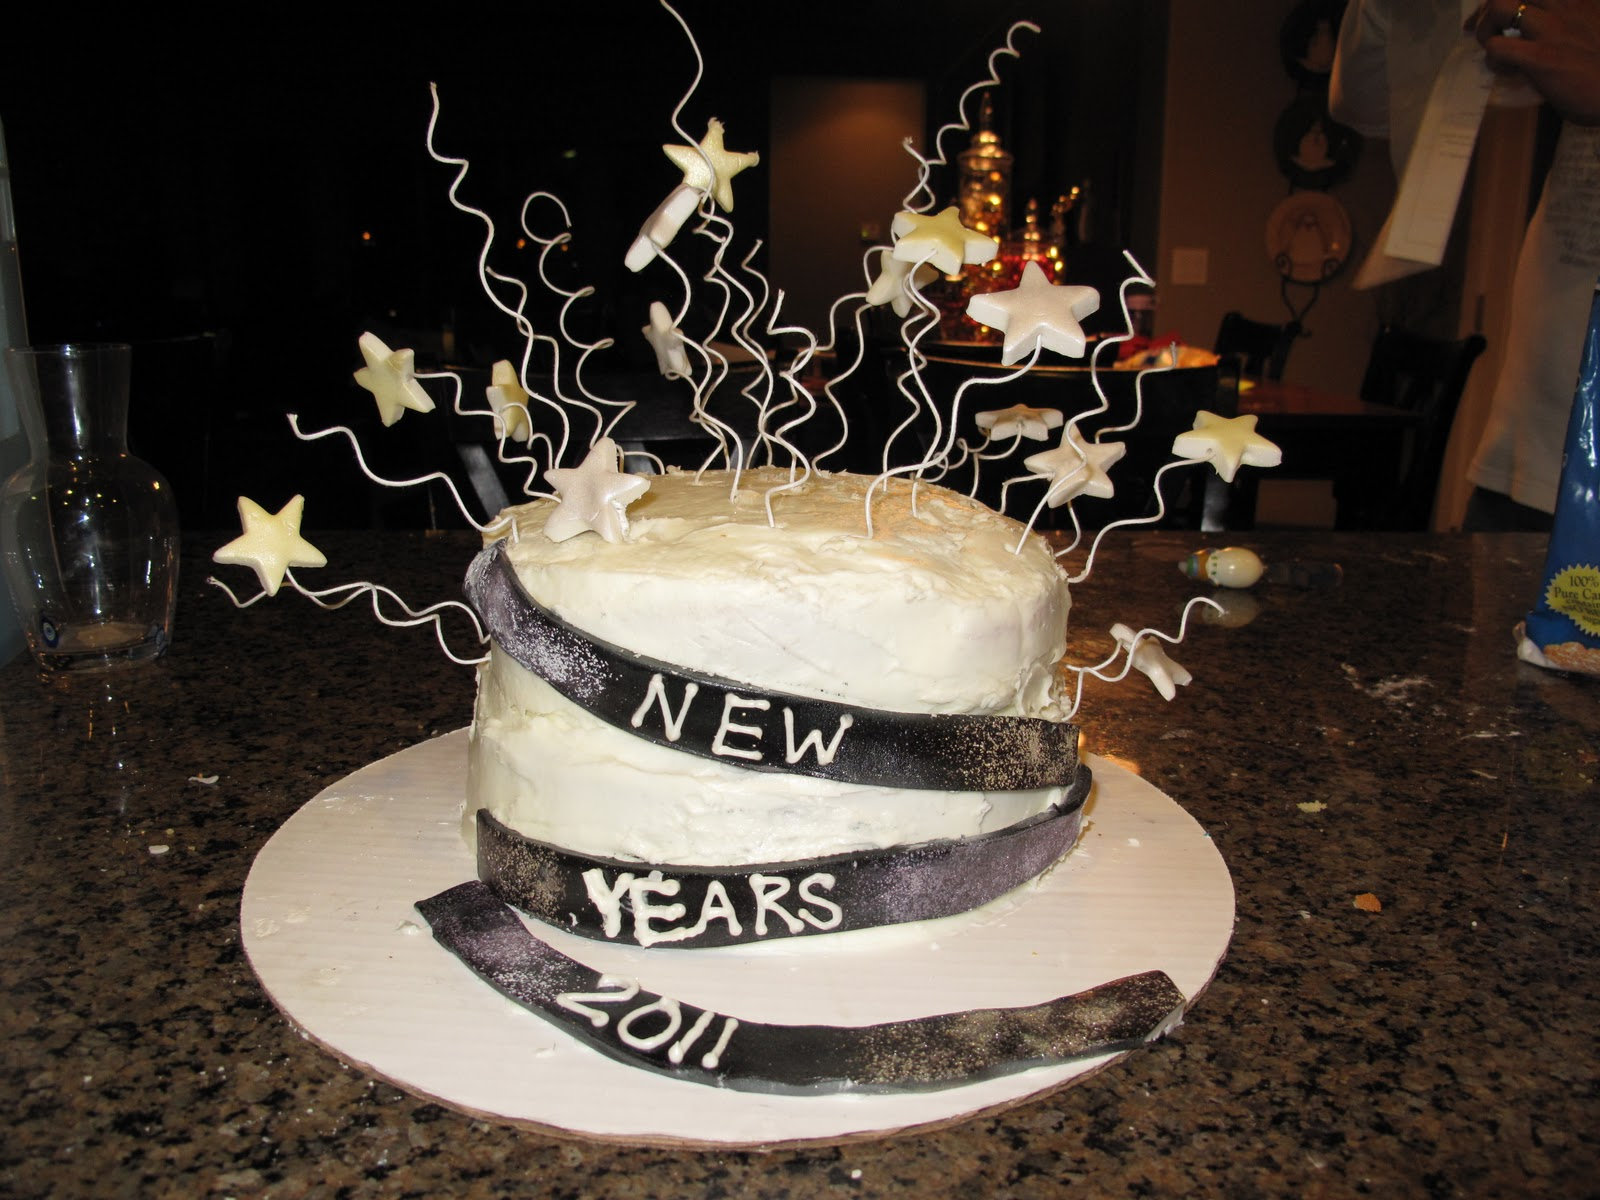 Cake Images New Year : The little Baker Girl: New Years Eve Cake